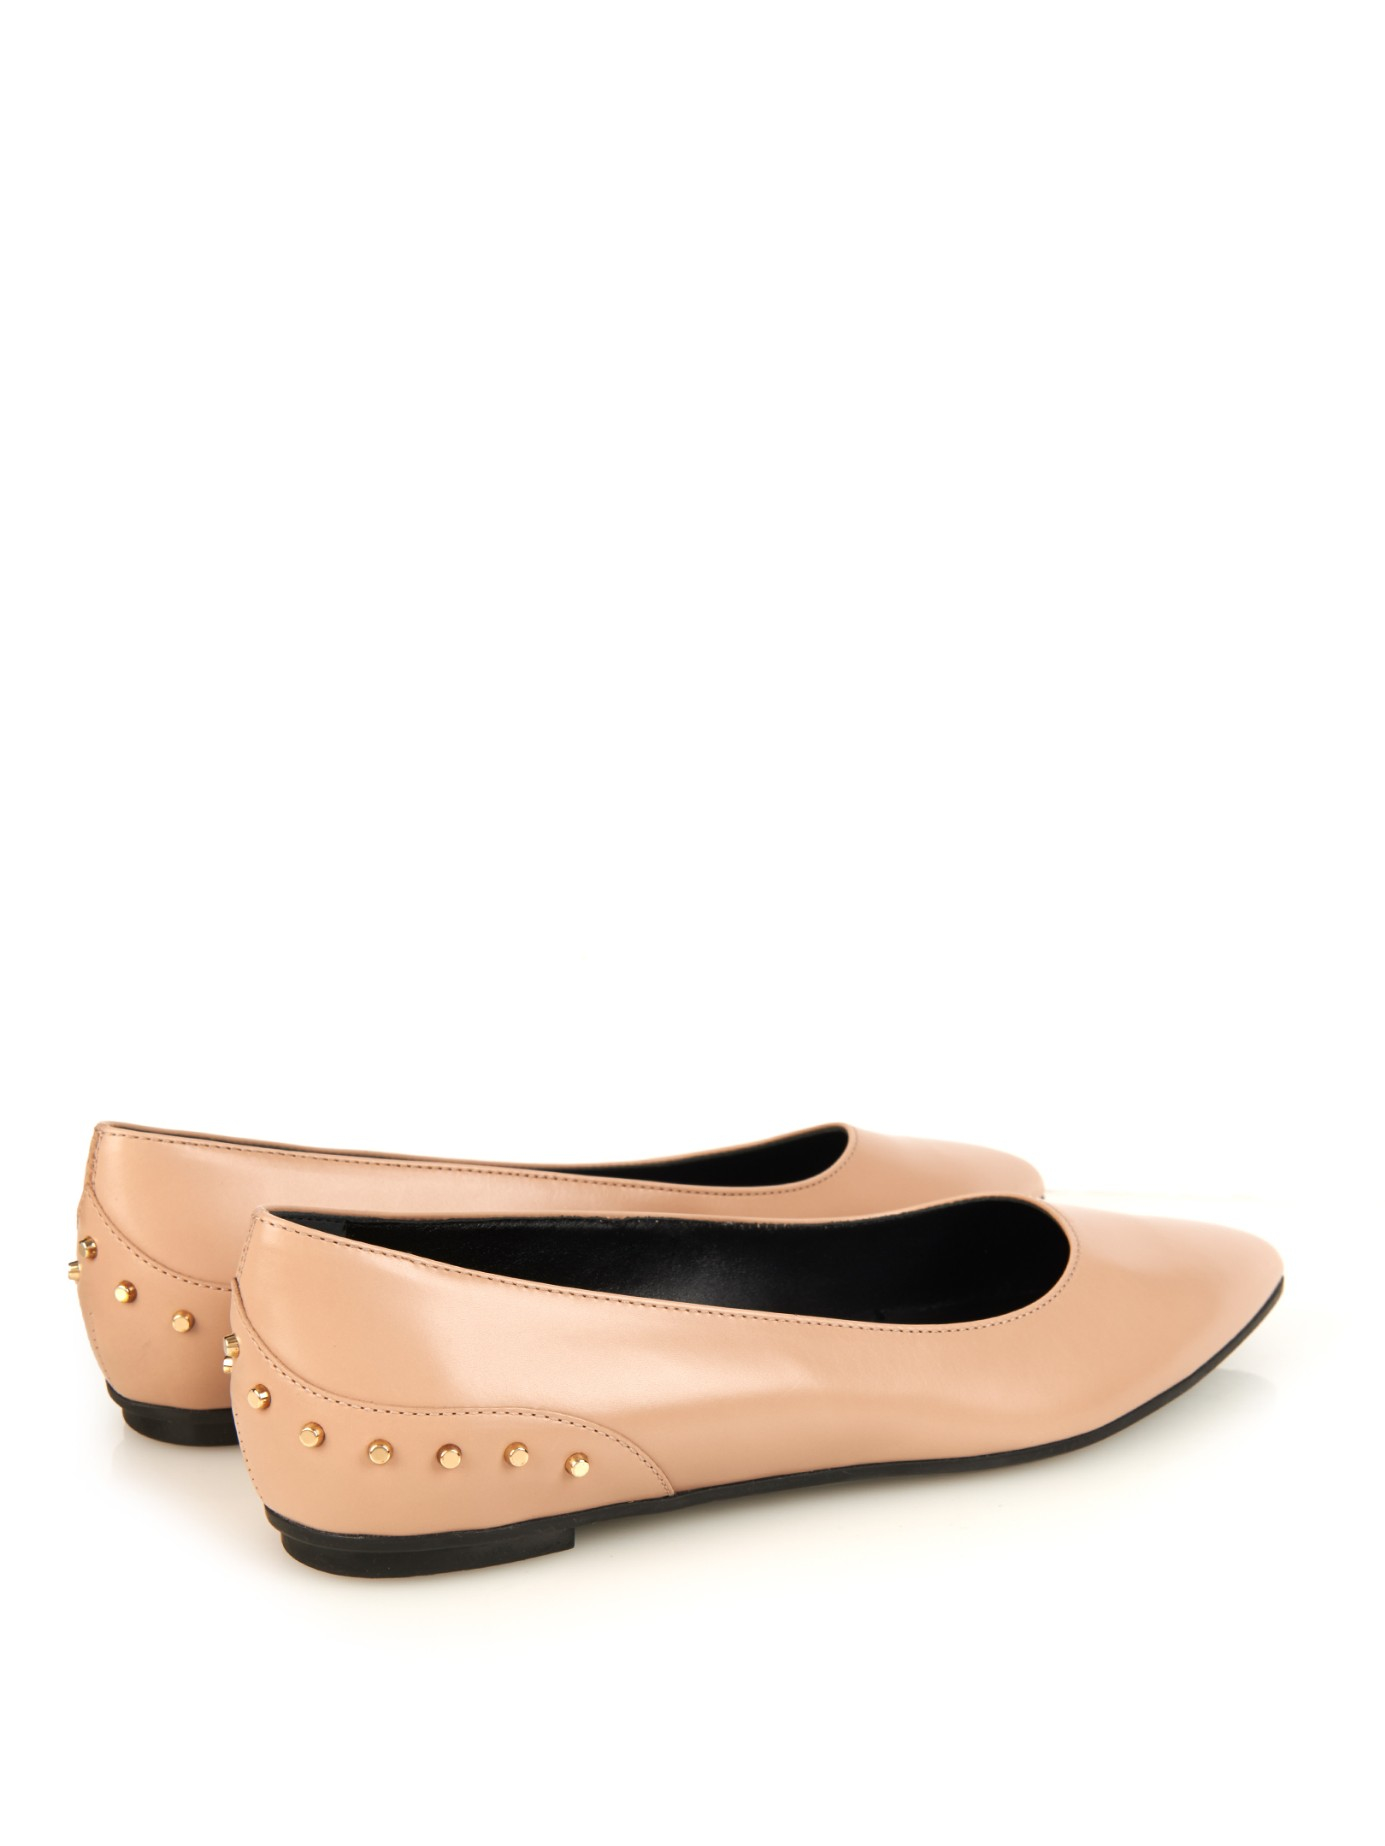 Tod's Leather Pointed-Toe Flats reliable online outlet hsmavGt